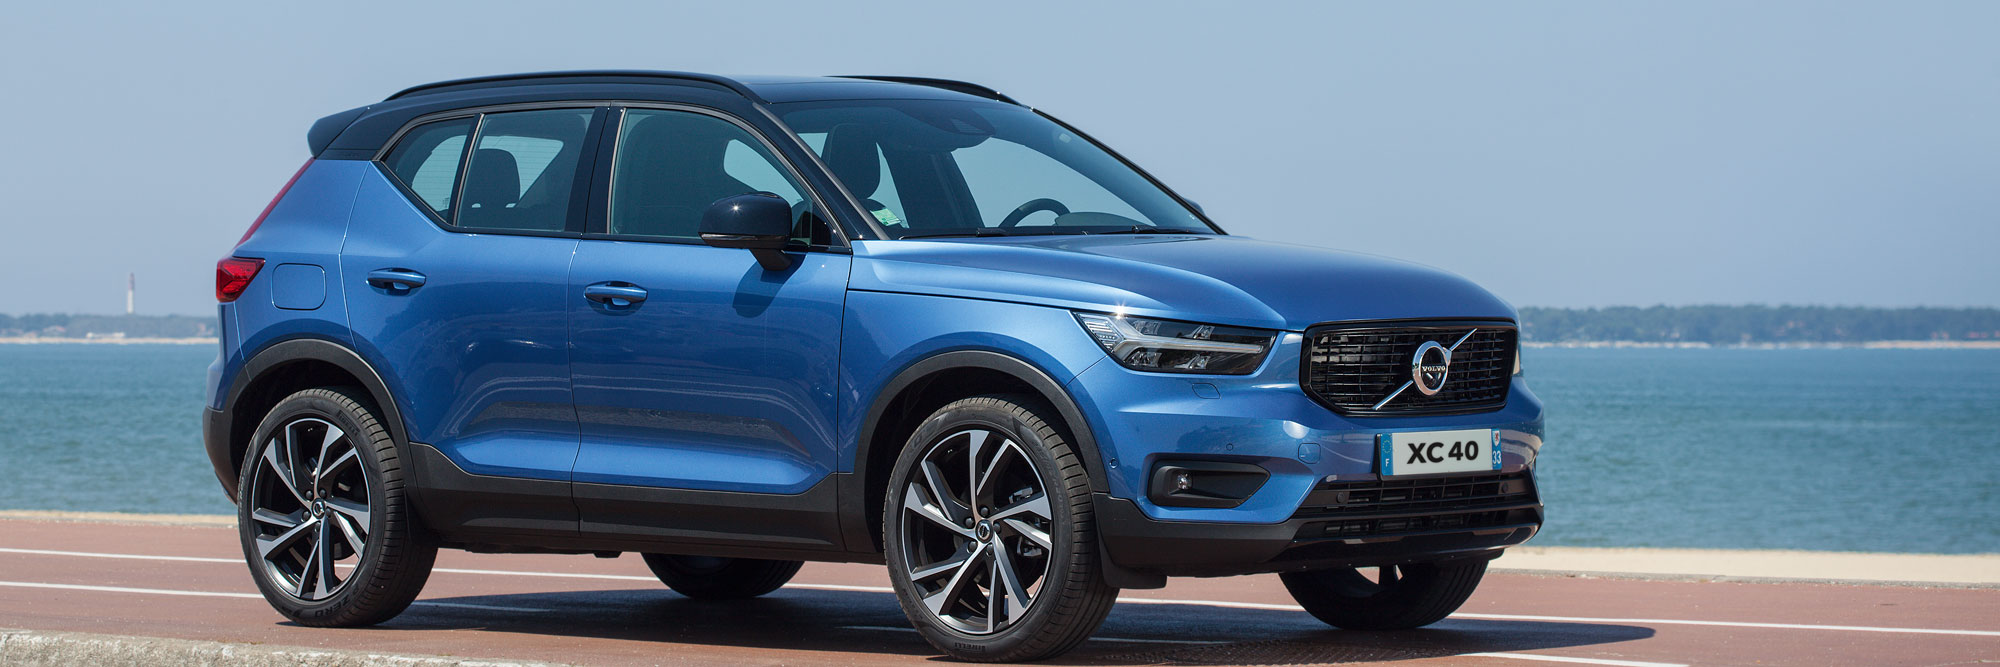 Cap Nord Automobile Volvo concessionnaire XC40 D4 R-design Cap Ferret Bassin d'Arcachon SUV Voiture De l'Année Car Of The Year test performante City Safety Pilot Assist